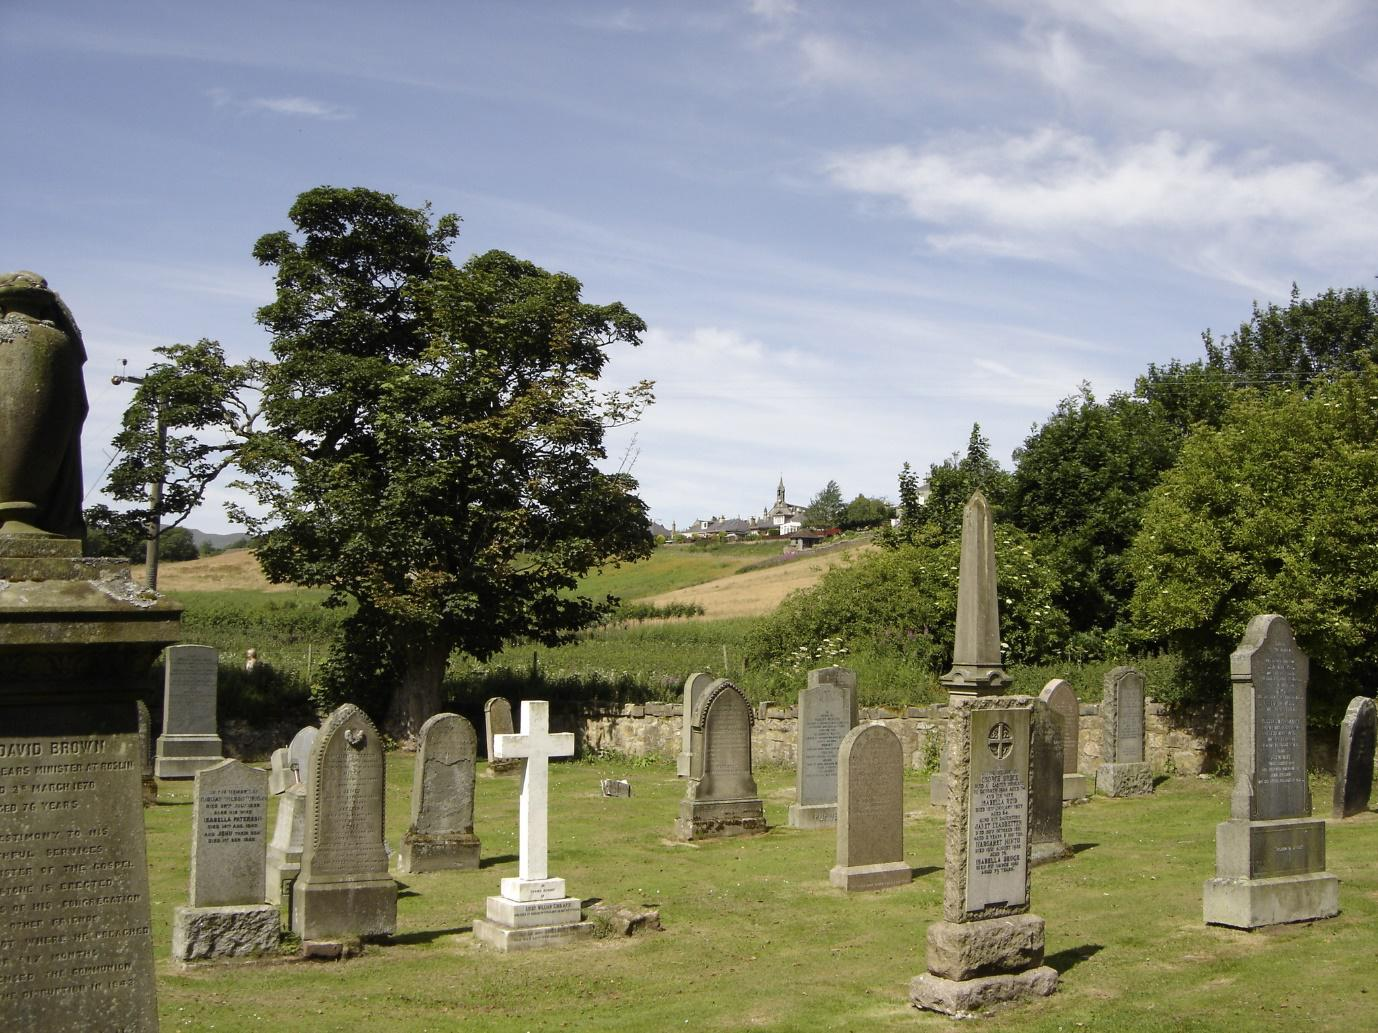 Graveyard – another home to return.